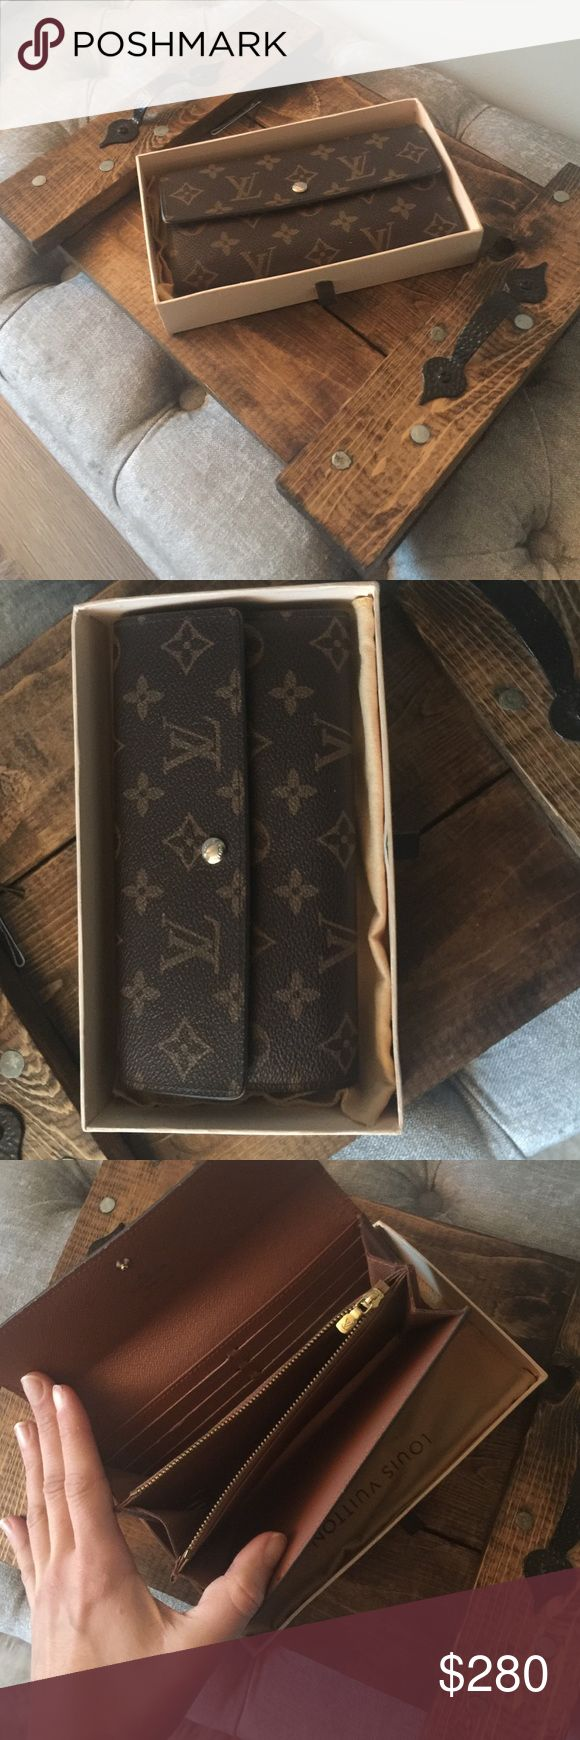 LV wallet Price reflects authenticity.. as far as I am aware. I purchased this at an upscale consignment shop and paid 450 for it under the impression it was fully authentic. I took it to another and the girl said she couldn't find a code.. so I don't know! However, I think the wallet looks nice and is decent material. I usually purchase Valentino so this brand I'm not sure of materials etc. Louis Vuitton Bags Wallets